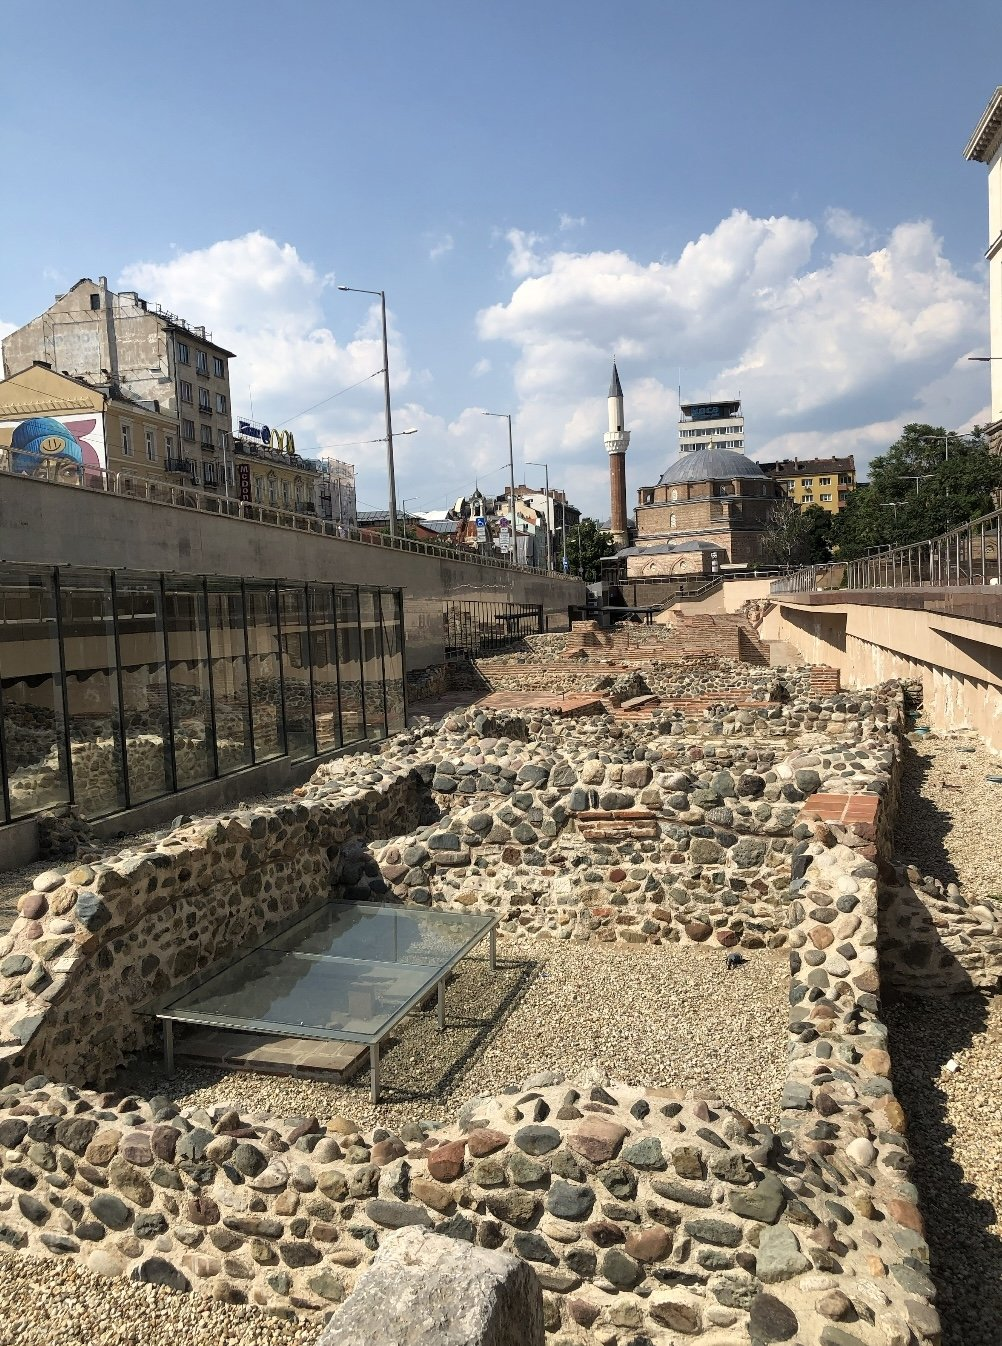 The ruins in Sofia's city center with the Banyabaşı Mosque in the background, Bulgaria.